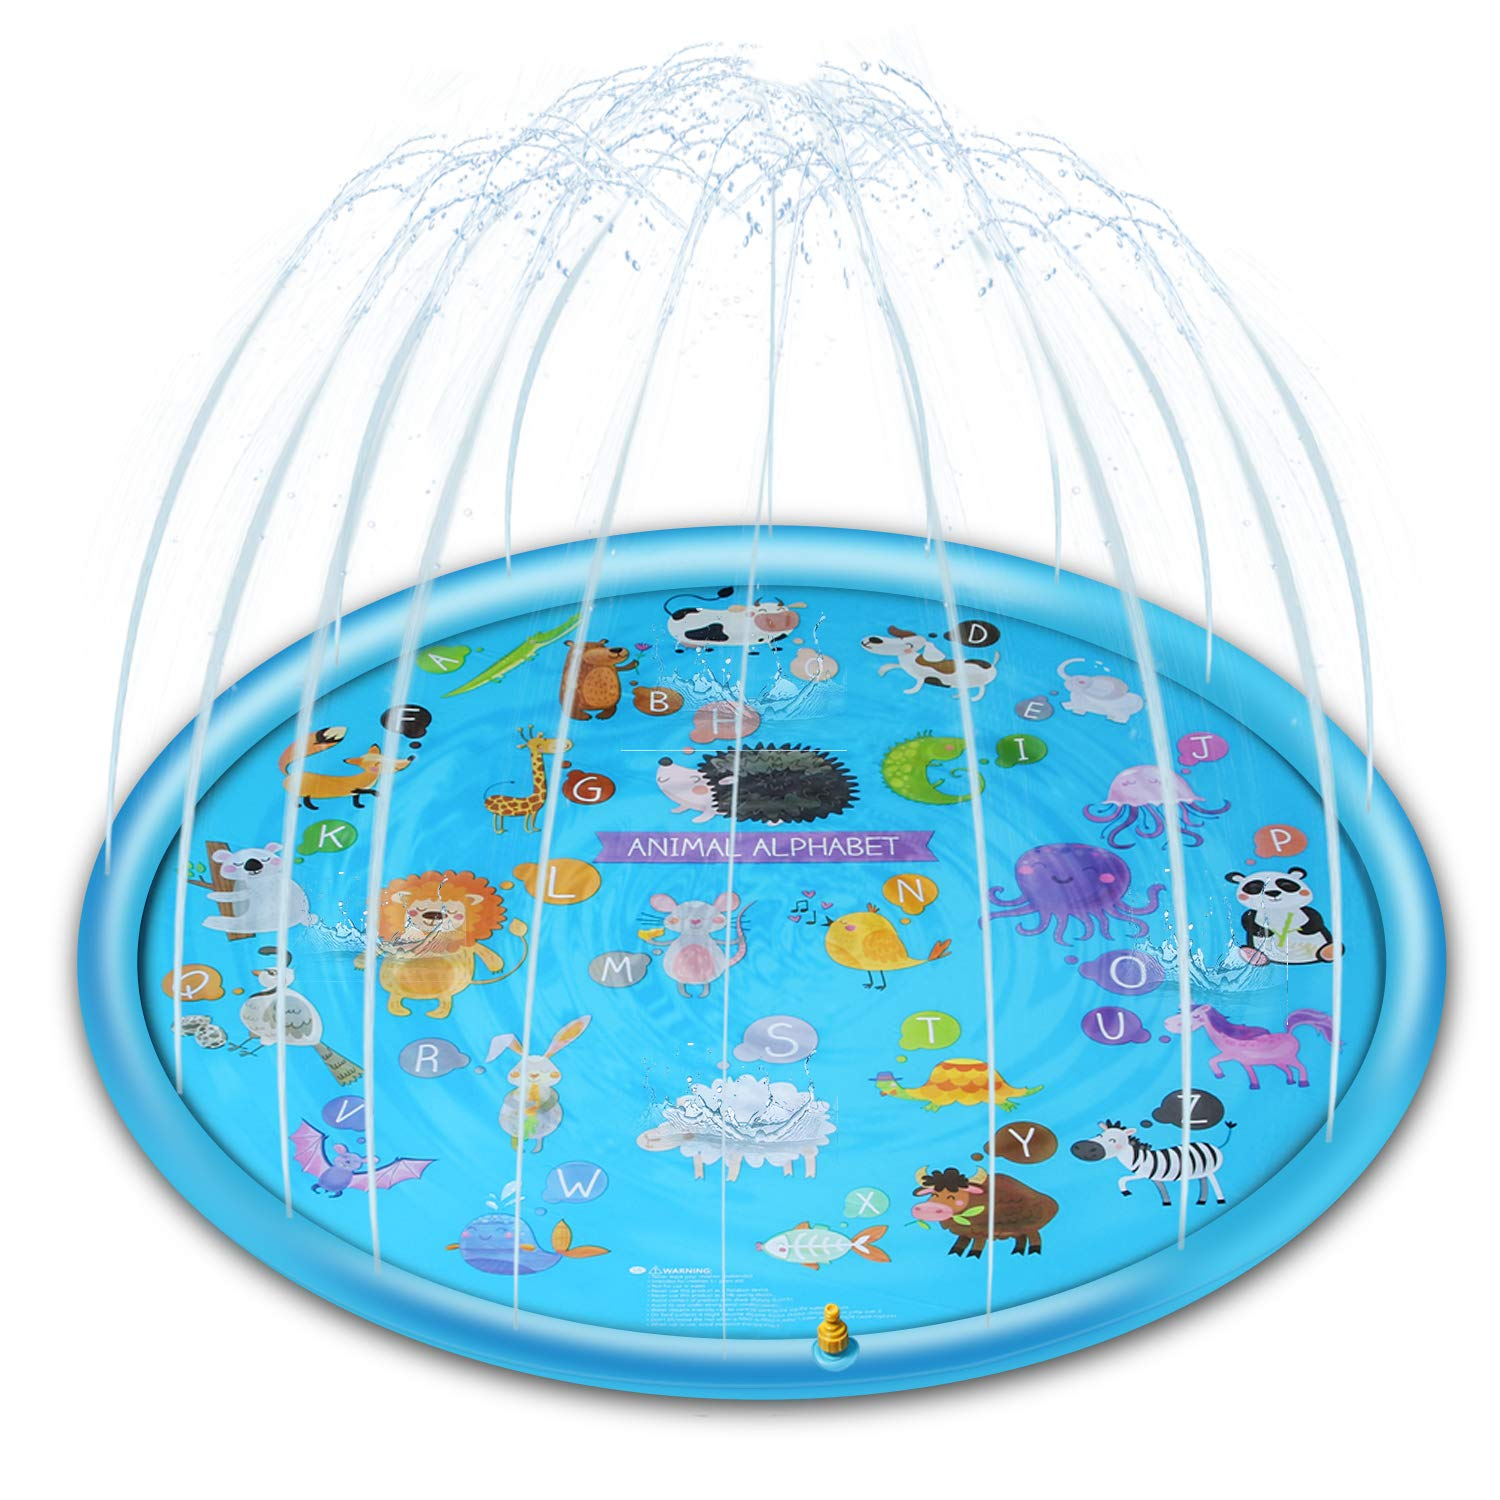 Kyerivs Sprinkler for Kids, 68'' Splash Pad Wading Pool for Babies Learning, Summer Outdoor Water Toys Play Mat for 1-12 Year Old Toddlers Boys Girls